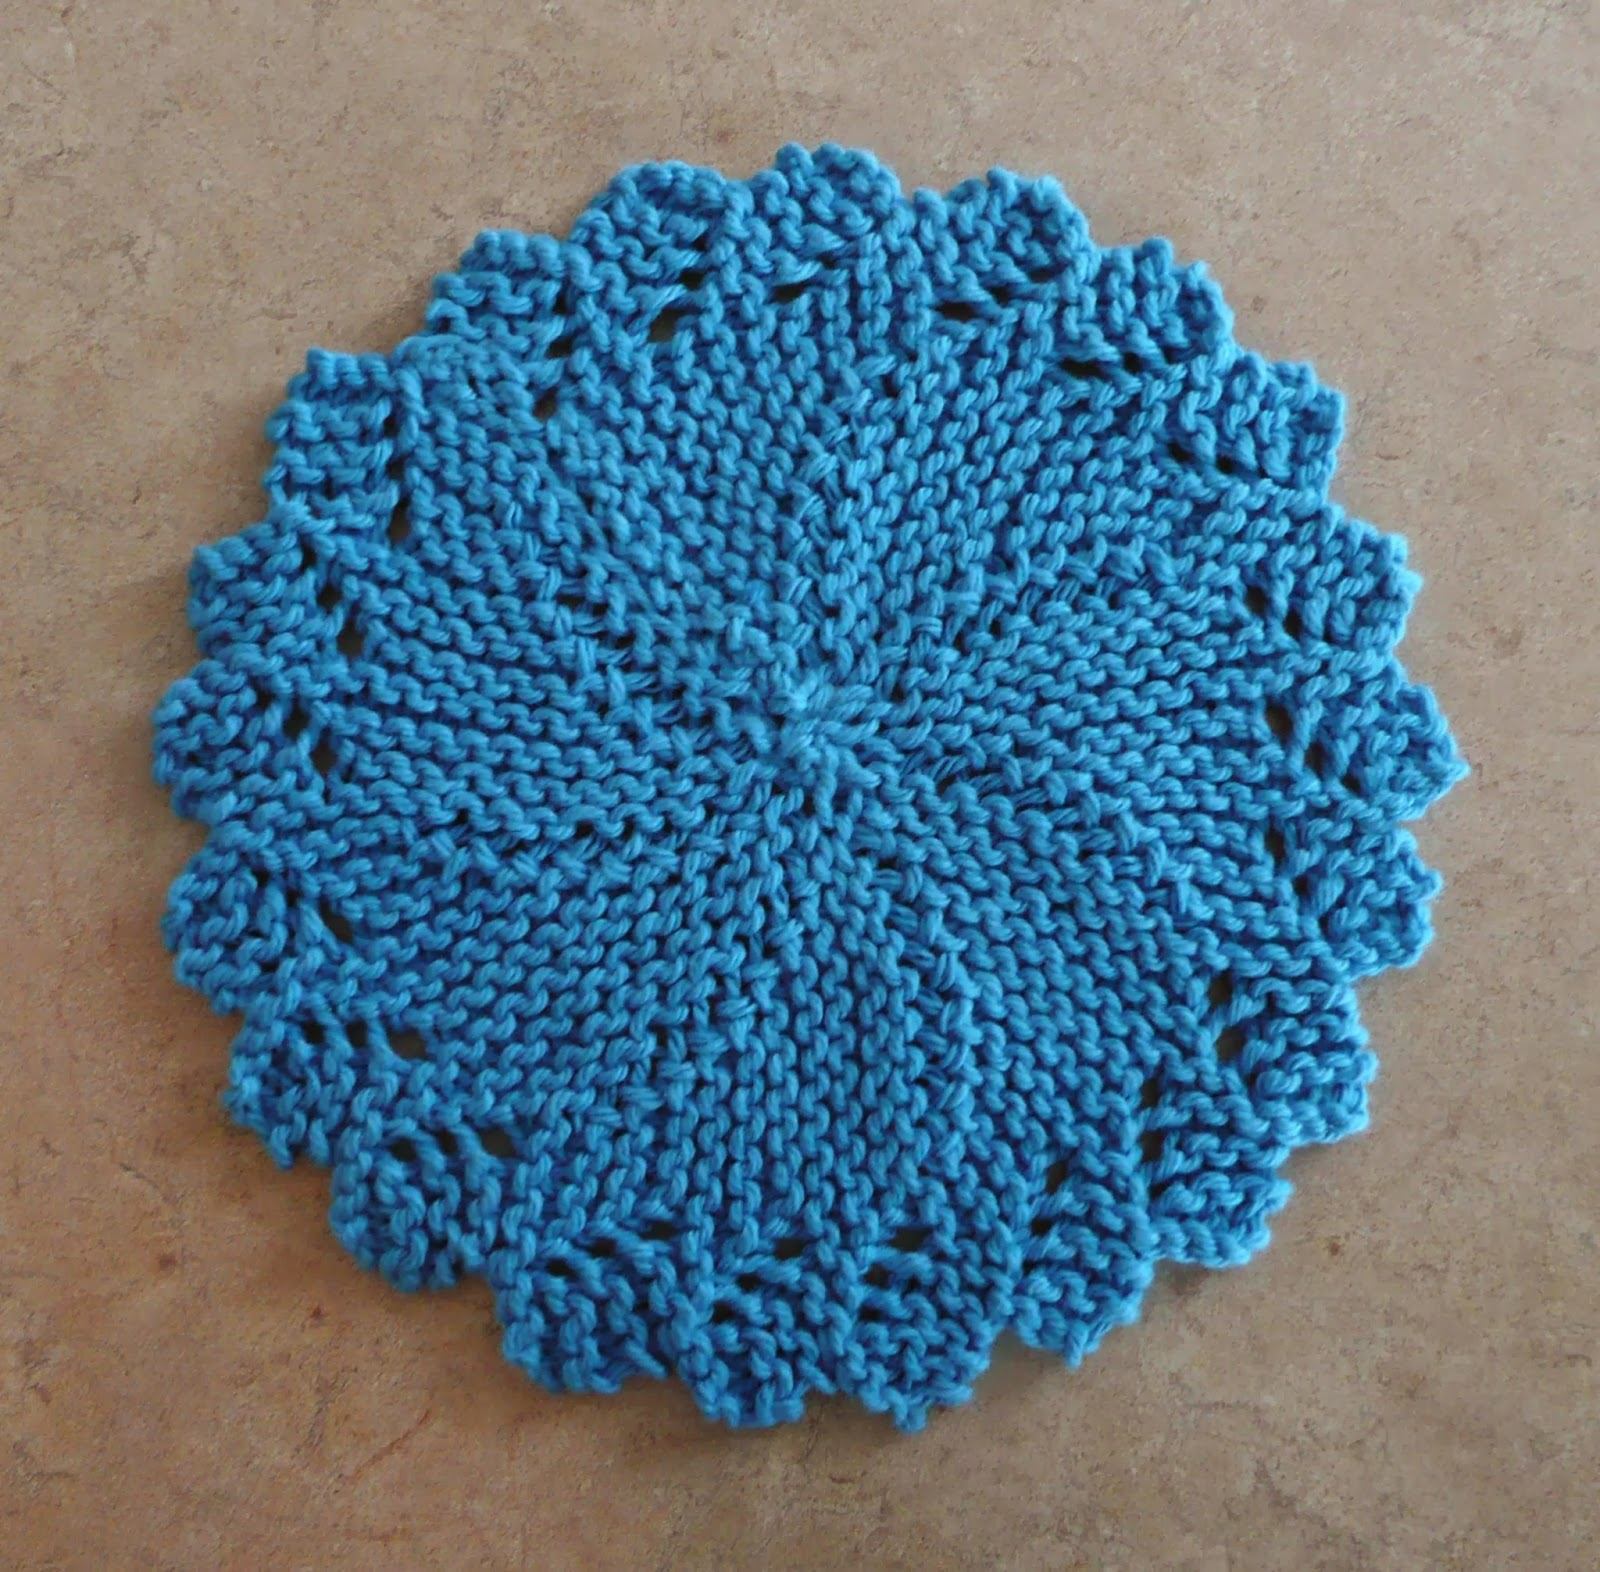 Lace Knitting Patterns In The Round : Perfect One-Ounce Dishcloth - FREE Patterns: FREE PATTERN #11 - Knitlist Lacy...